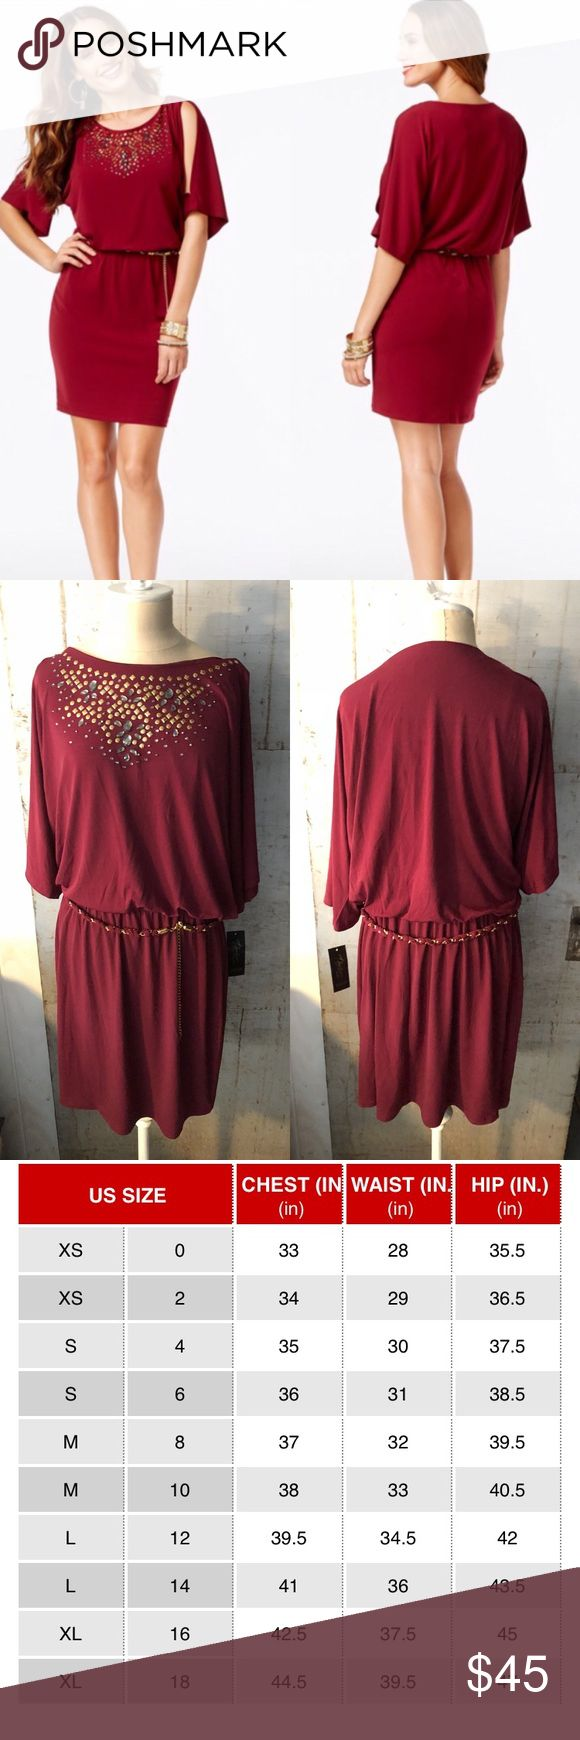 Maroon studded dress Maroon studded dress, belt included.  📊Use size chart for fit  🚫modeling or trades (askers will be ignored) or lowballing LC ✅ will consider offers made through BLUE offer button.   ✅ bundle 3 or more items for a custom offer using bundle feature 🌻 Social media: Business Instagram @lovelyinlilacofficial Thalia Sodi Dresses